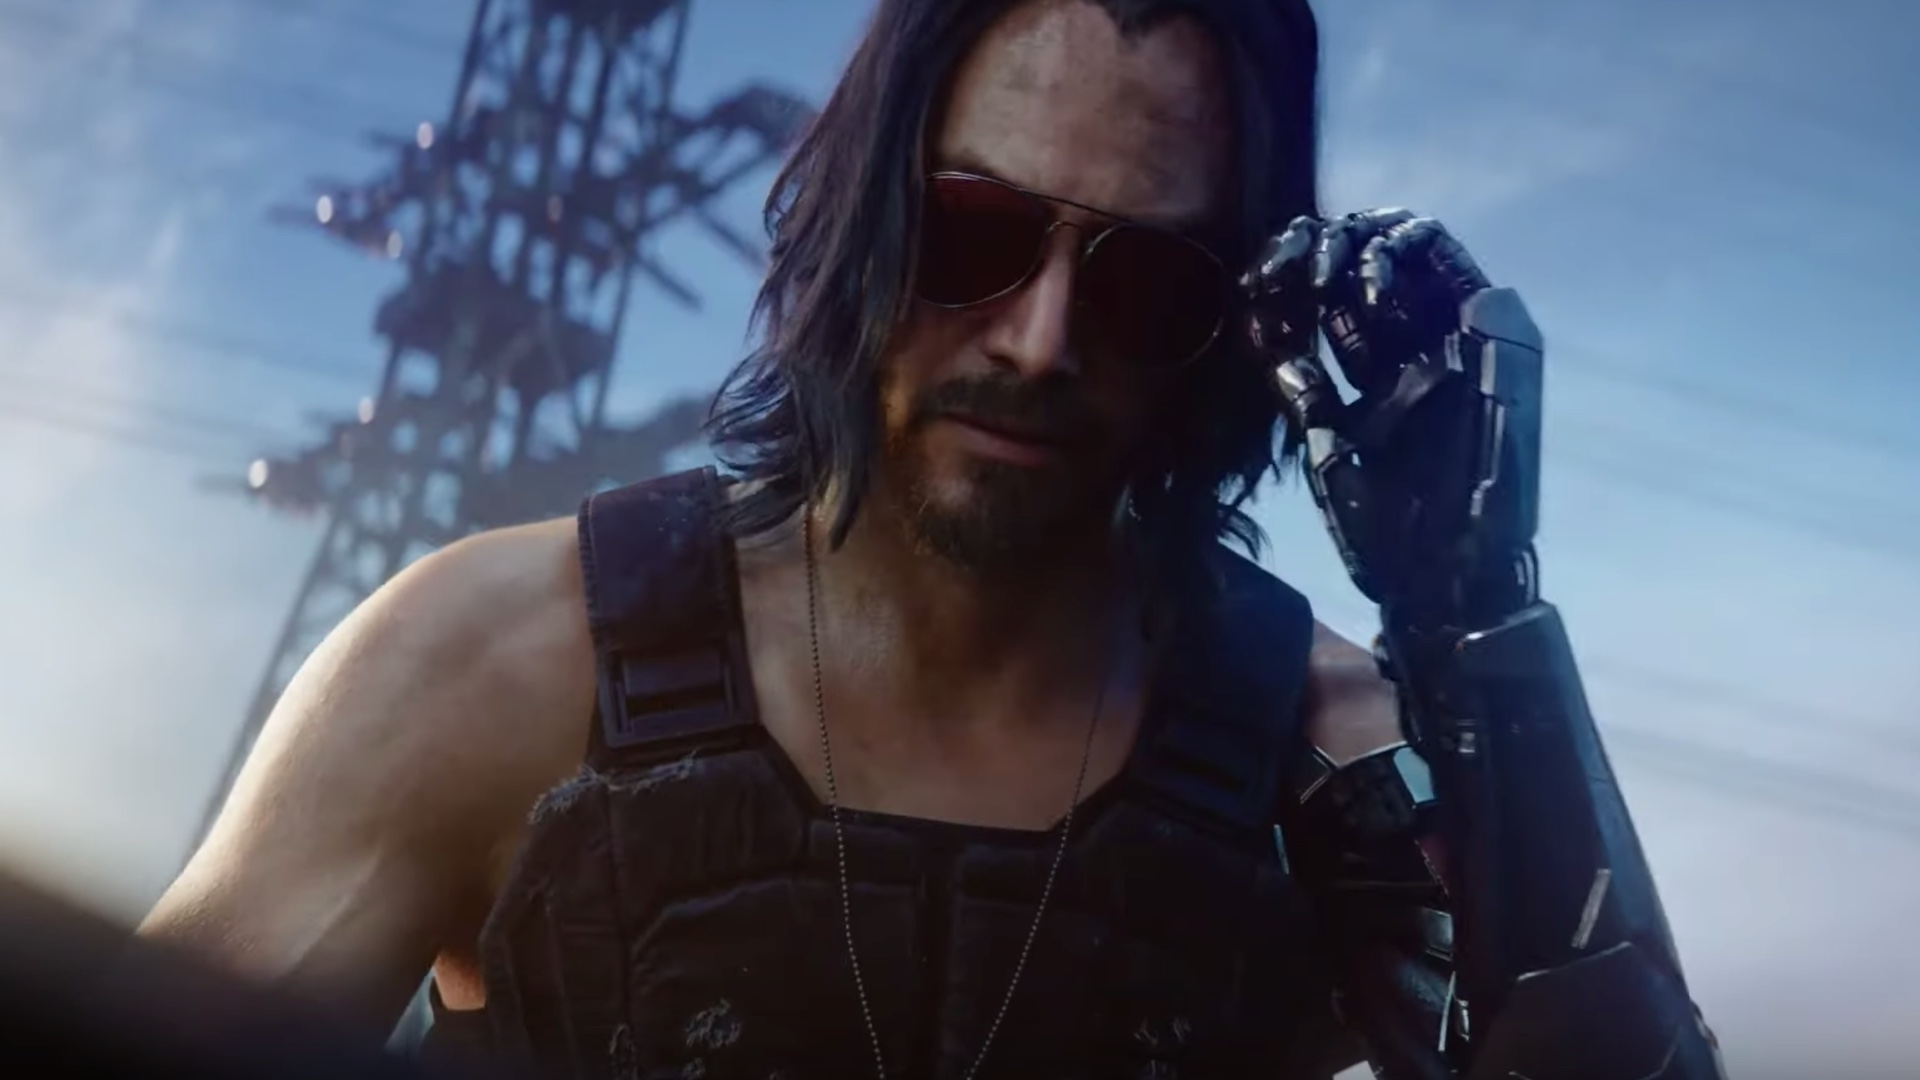 Cyberpunk 2077 Potentially Teasing More Hollywood Talent